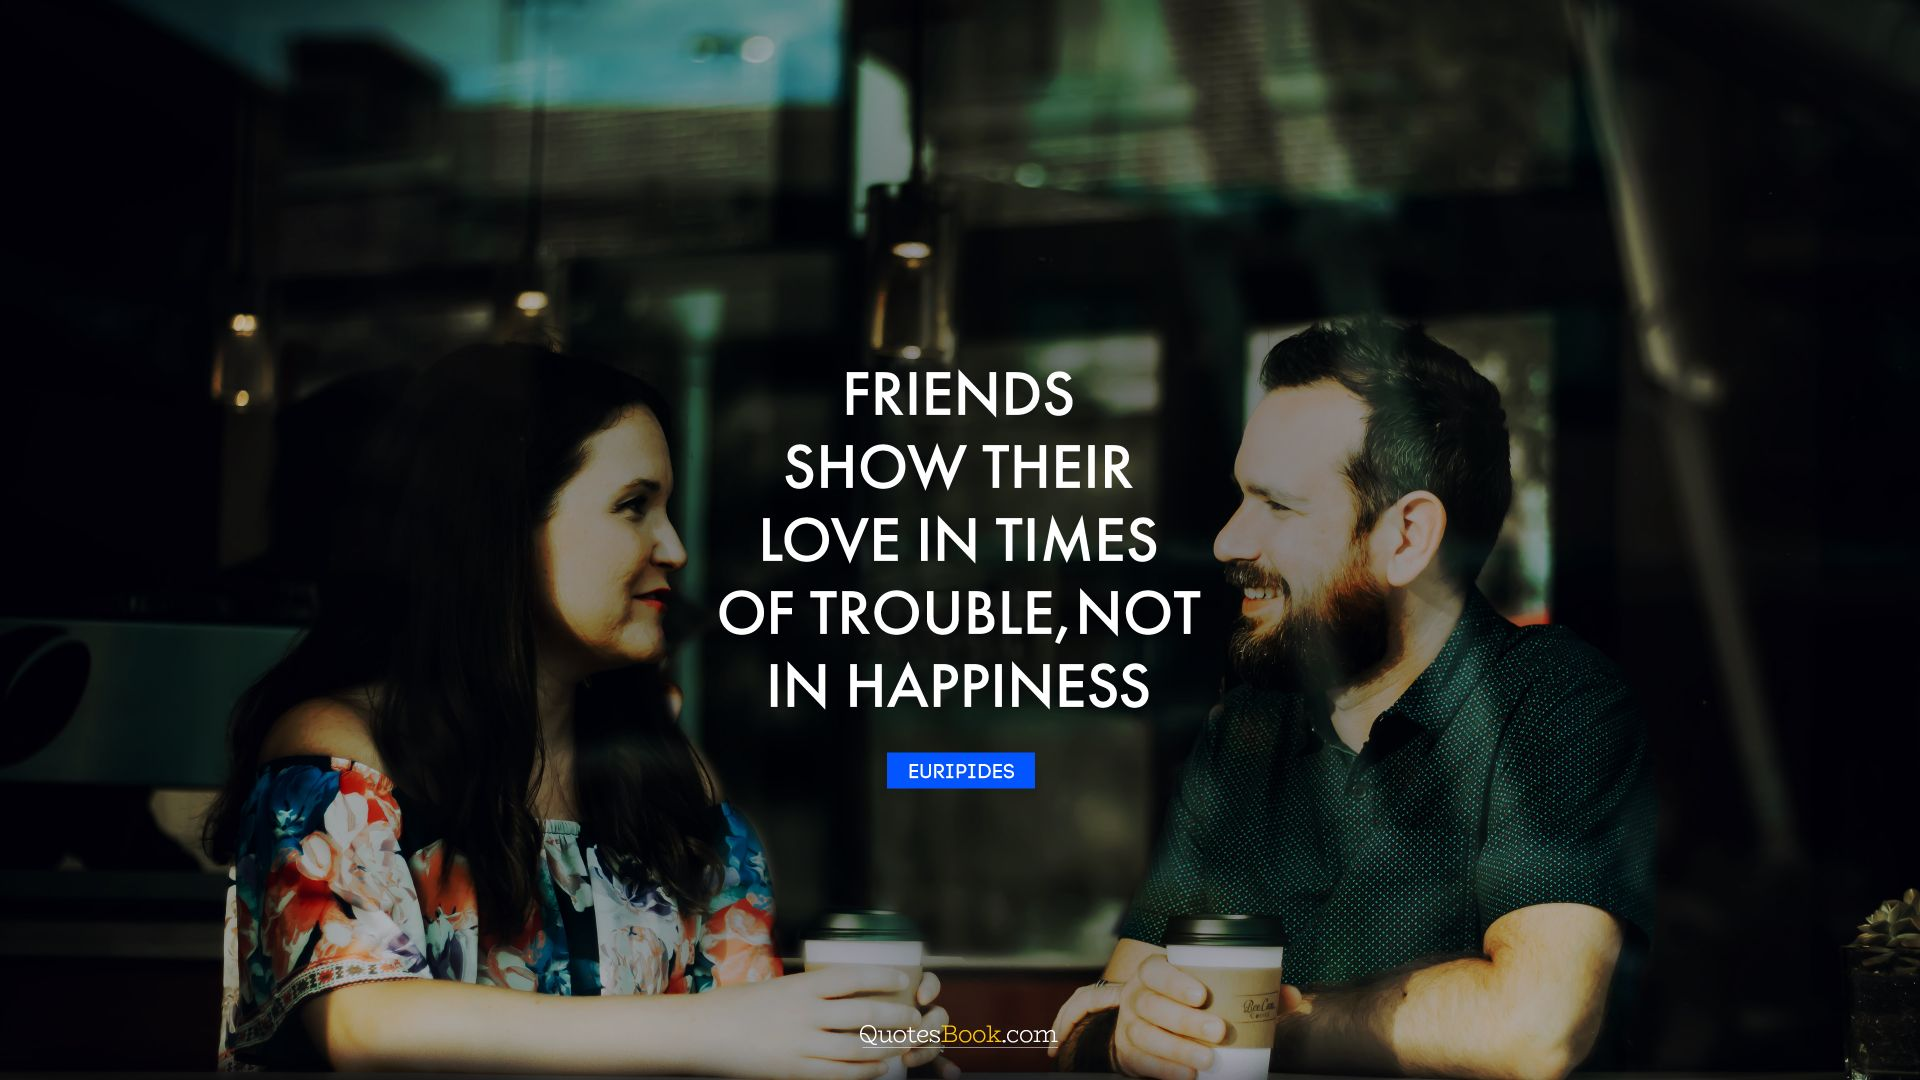 Friends show their love in times of trouble, not in happiness. - Quote by Euripides